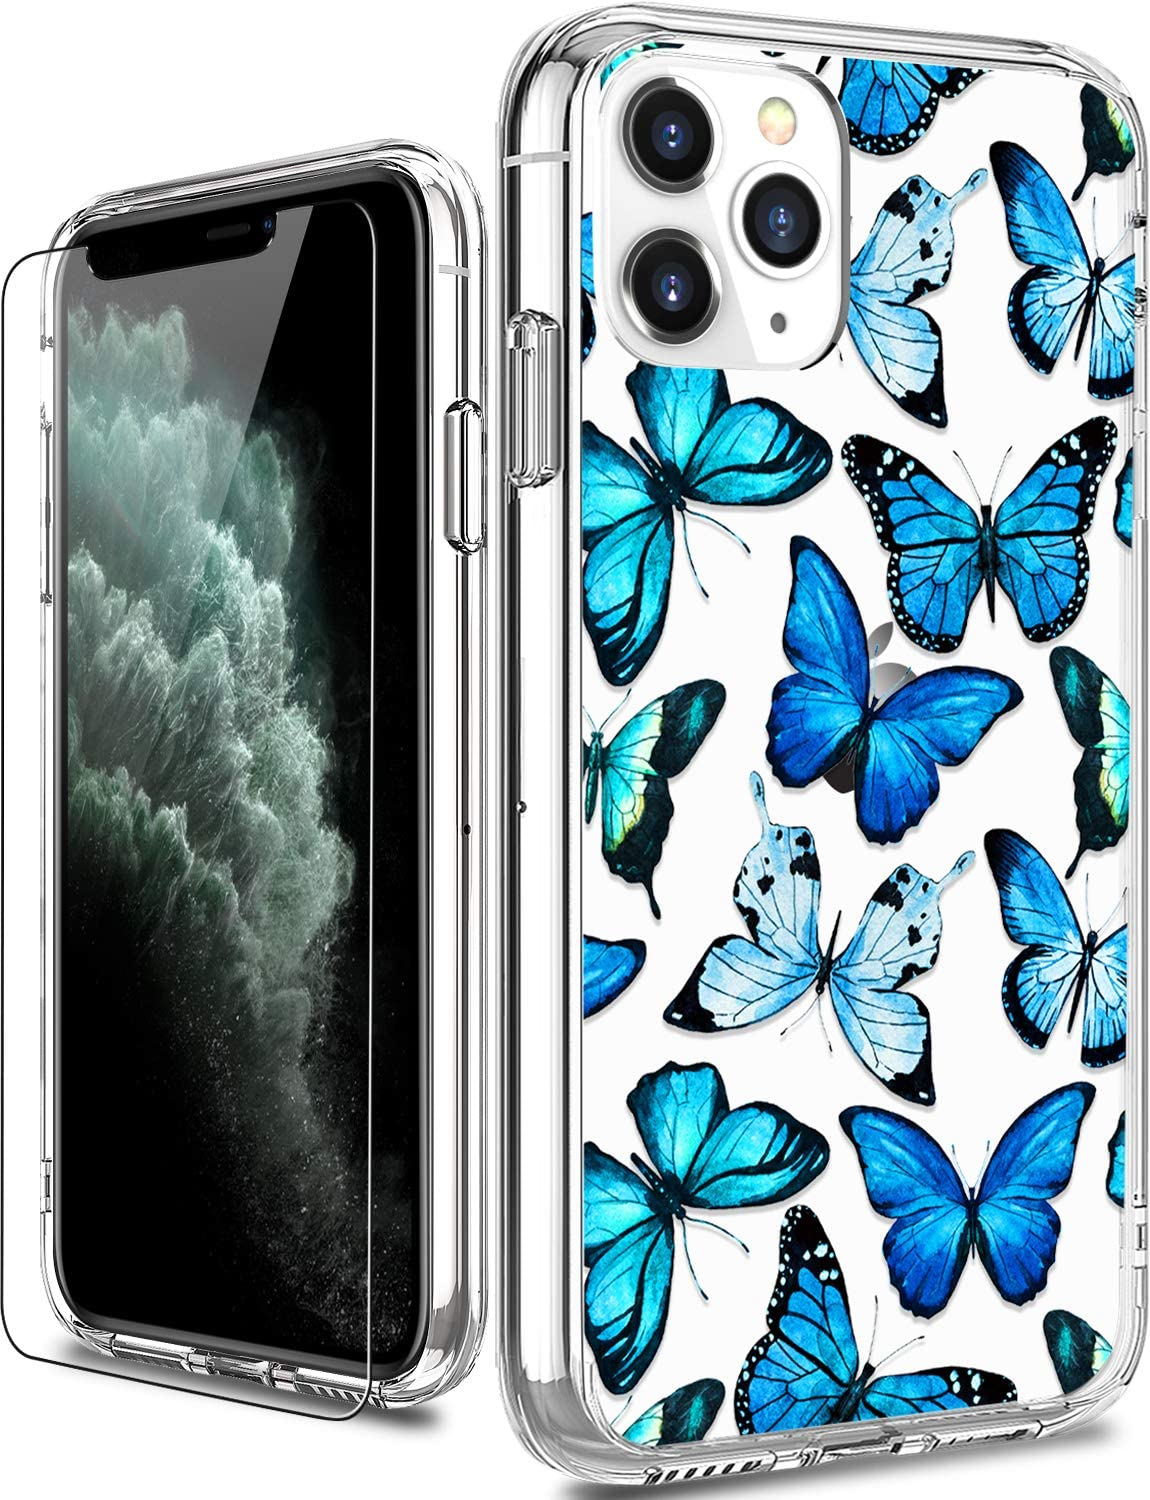 Amazon Com Luhouri Iphone 11 Pro Max Case With Screen Protector Clear With Floral Flower Designs For Girls Women Shockproof Slim Fit Protective Phone Case For Iphone 11 Pro Max 6 5 Inch 2019 Blue Butterflies